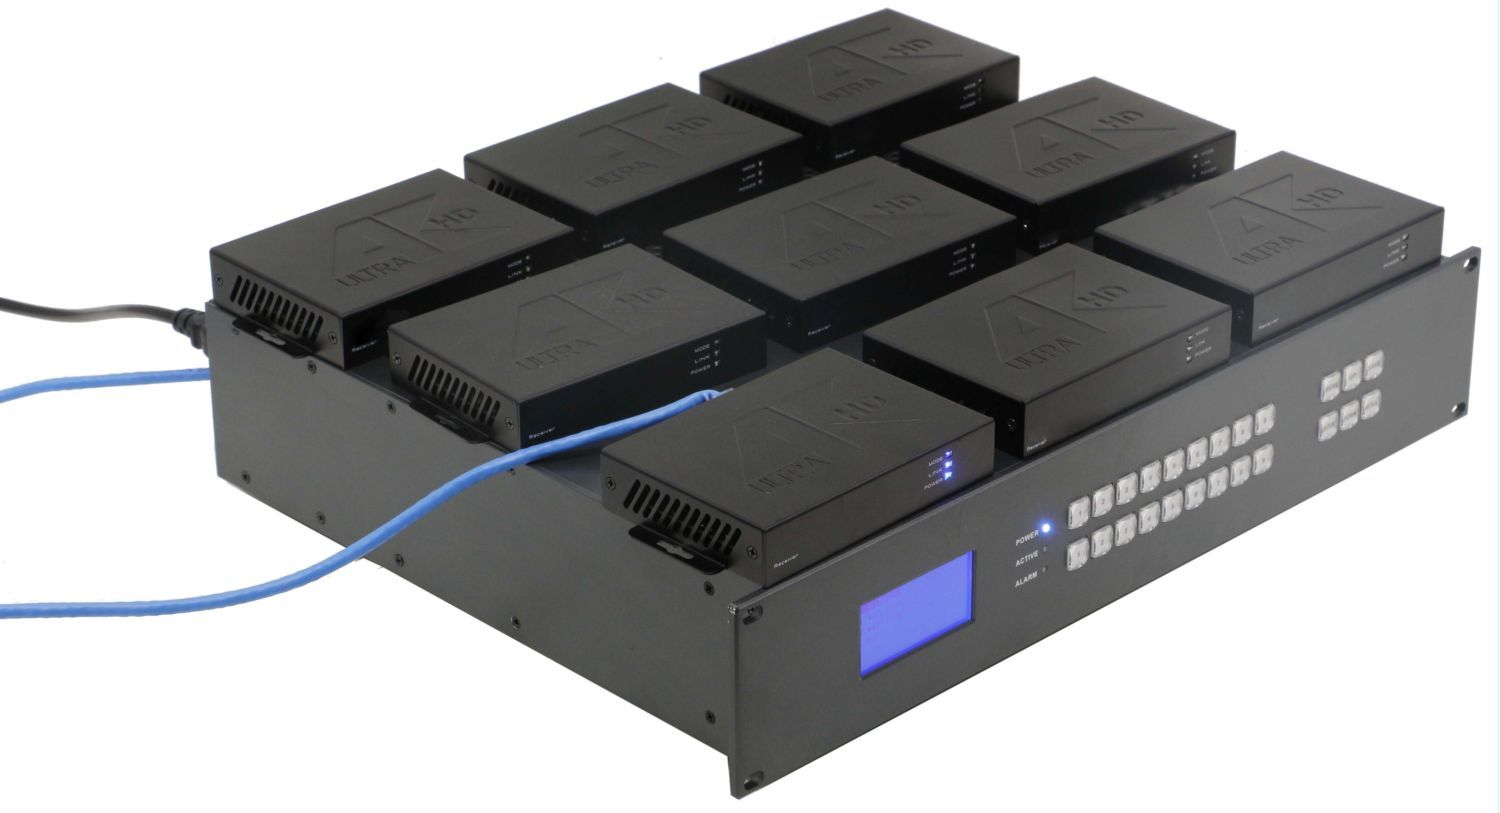 4K/30 9x9 HDMI Matrix Switcher Chassis - You Design